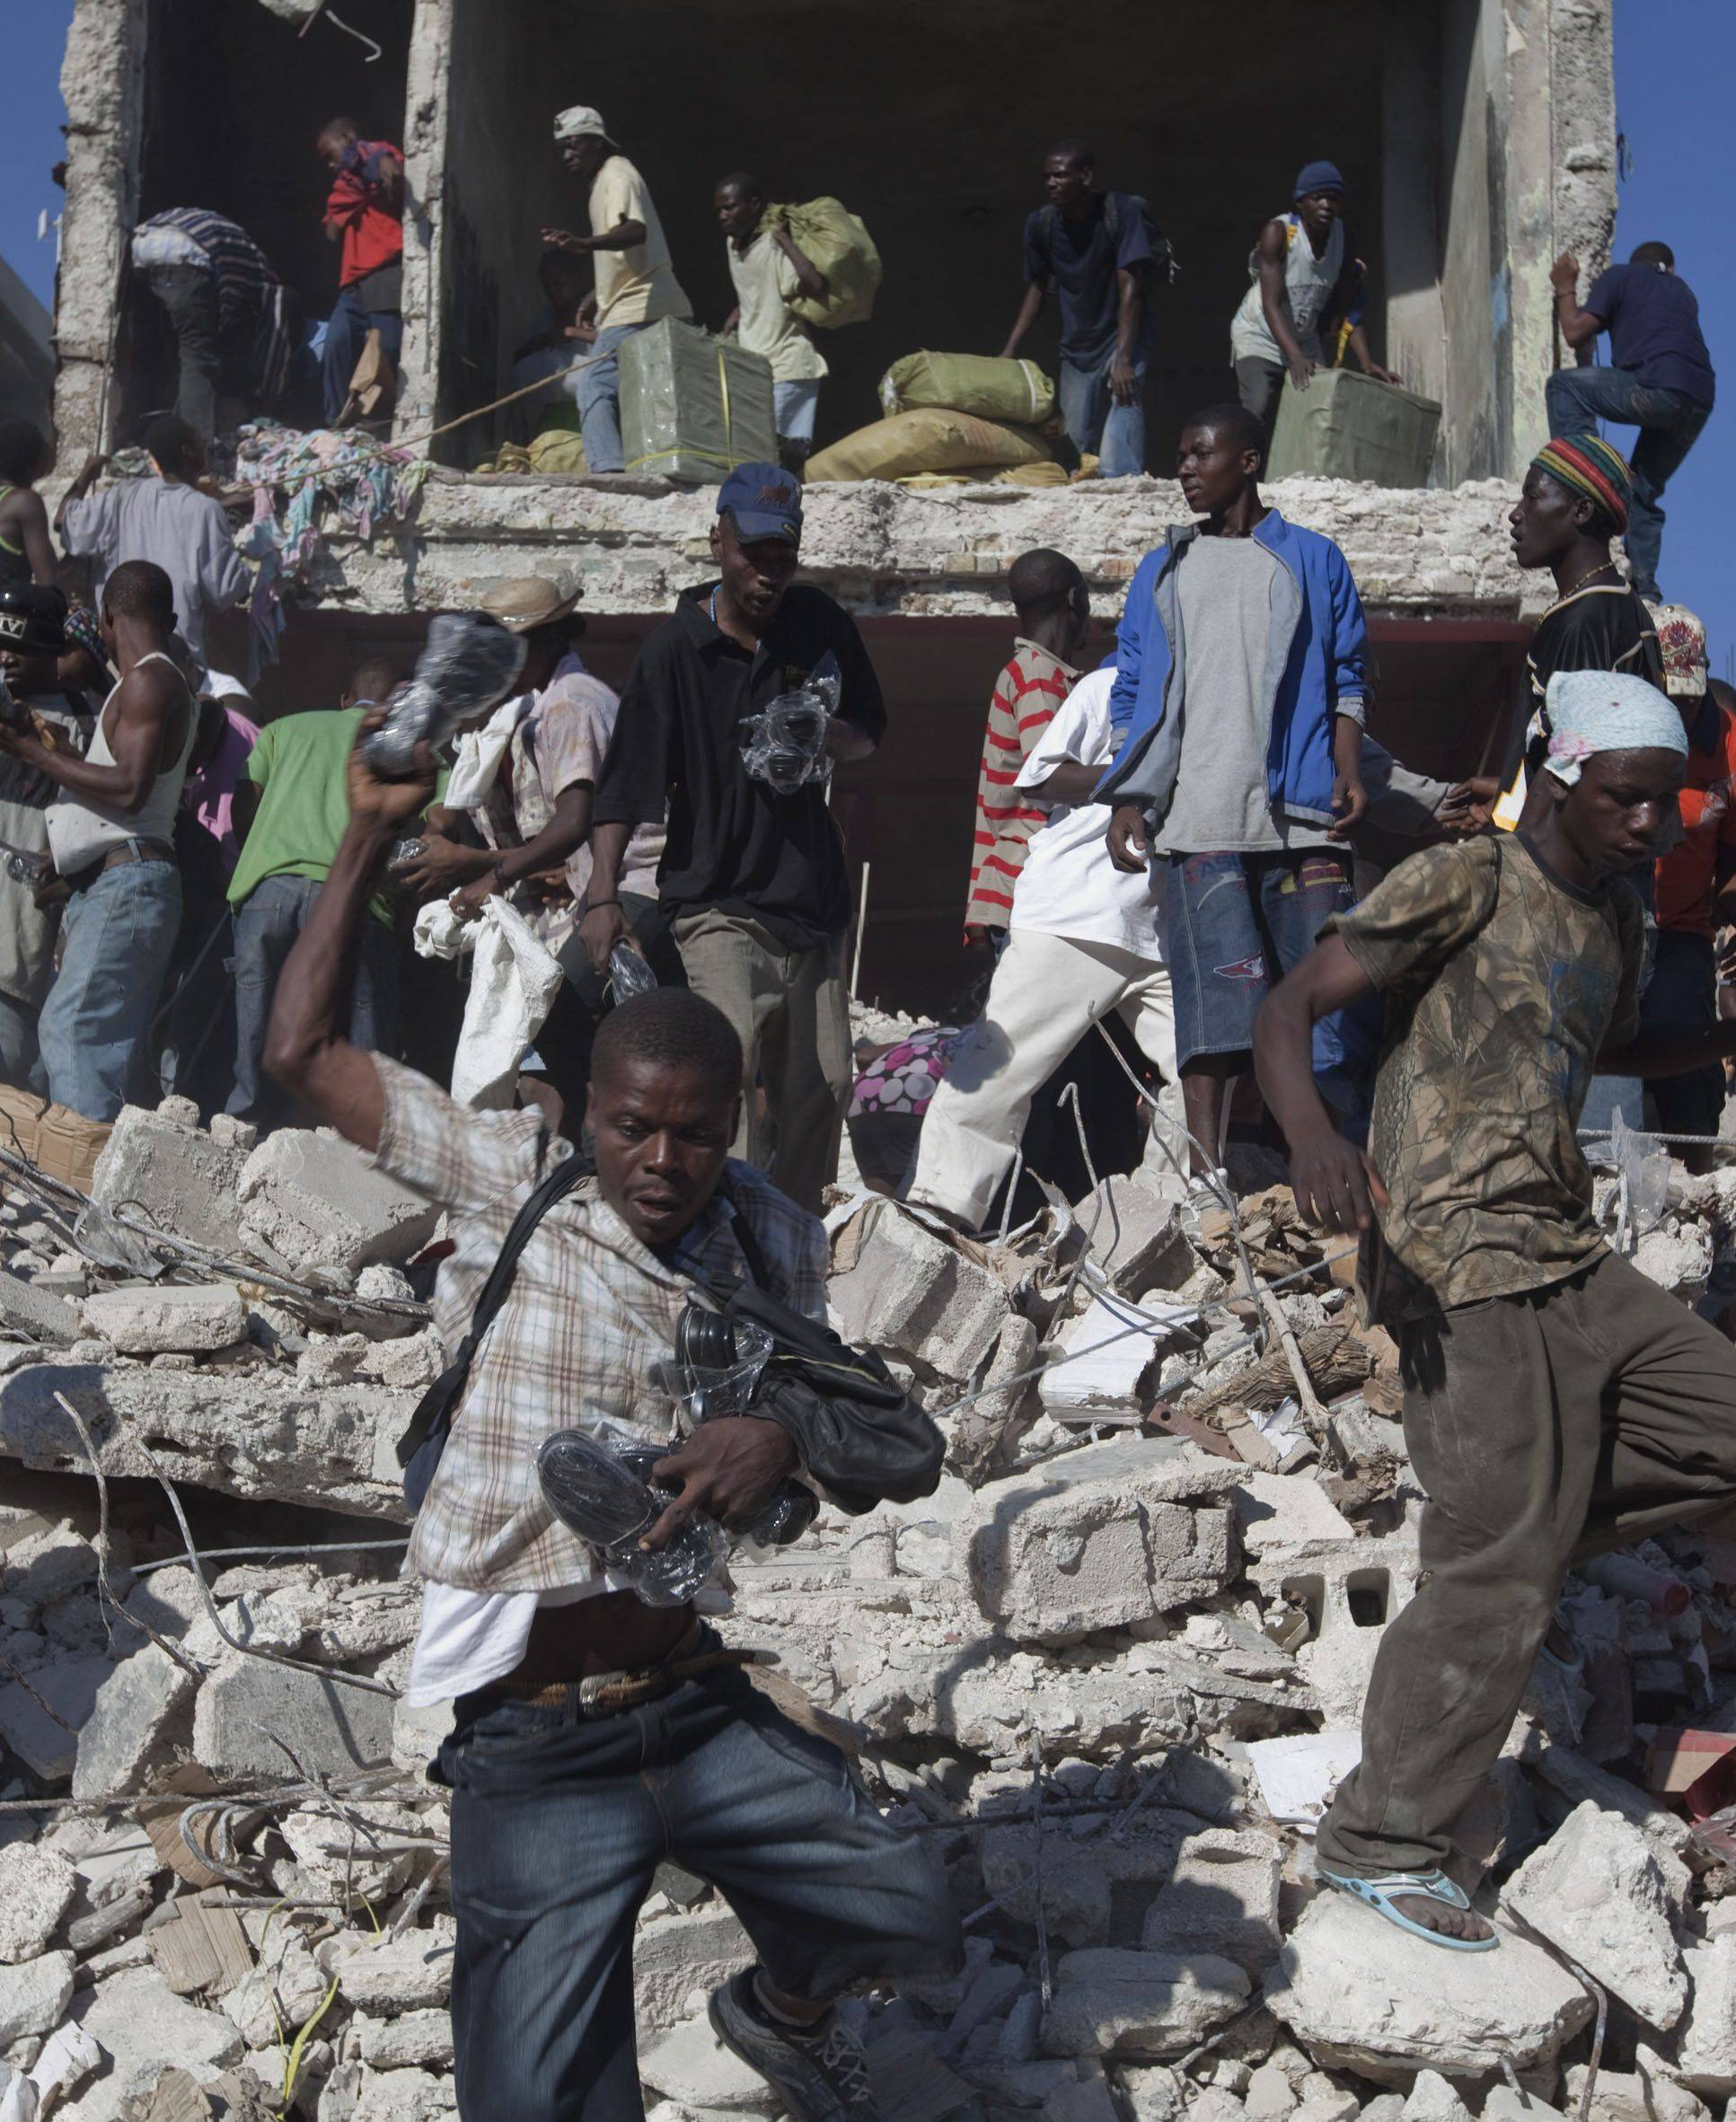 Scavengers look for goods amid the rubble of collapsed buildings in Port-au-Prince, Friday, Jan. 15, 2010.